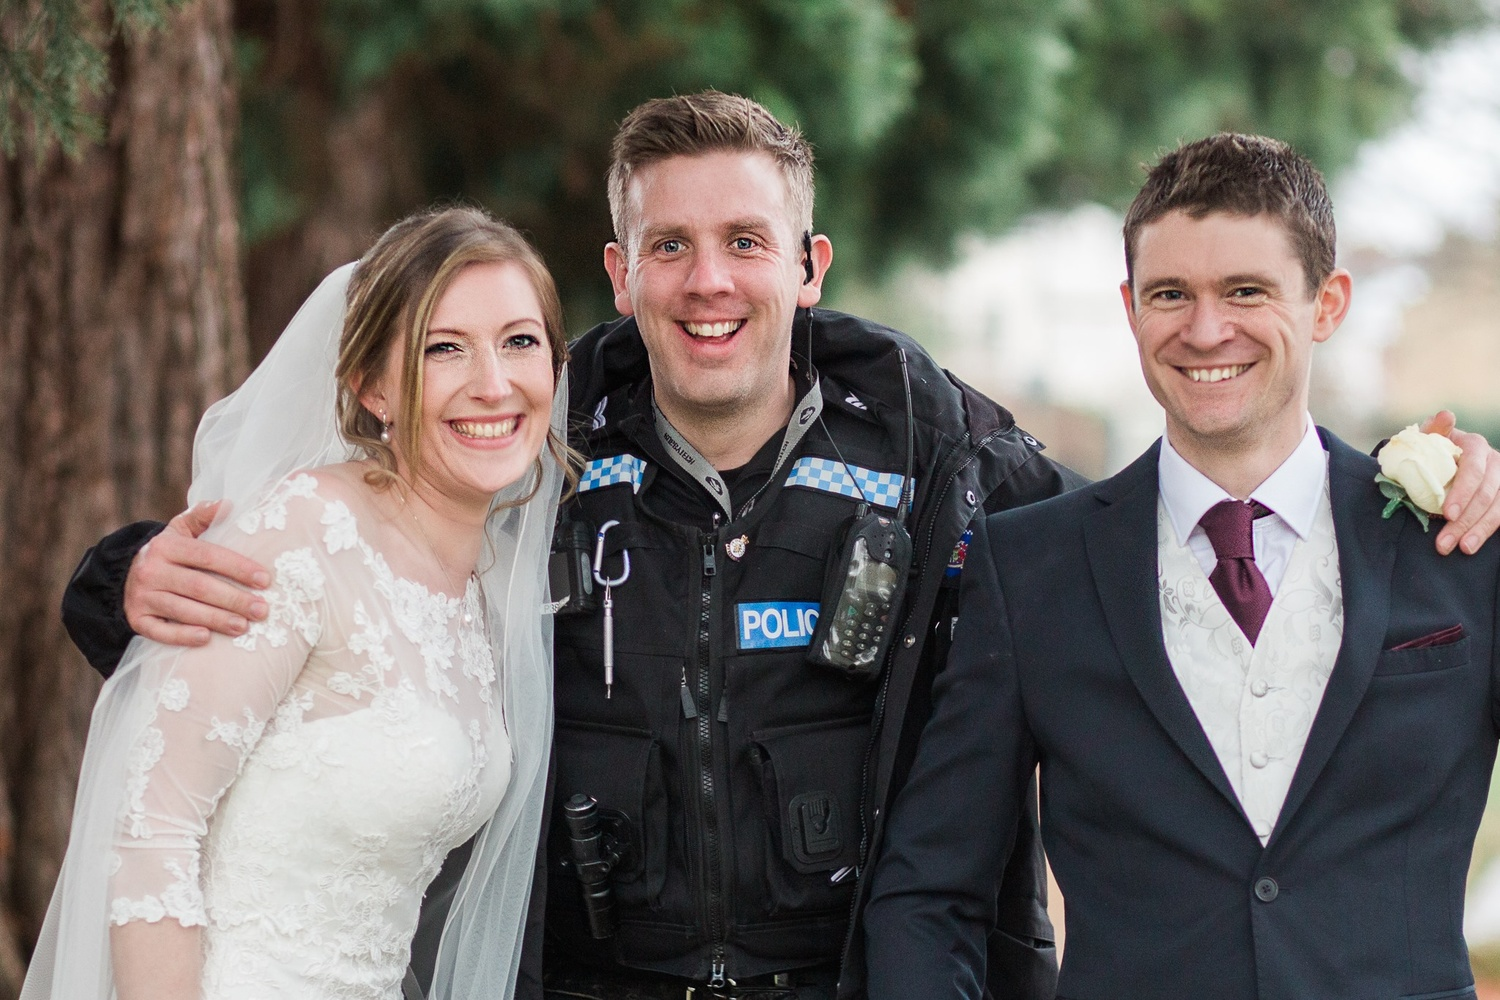 Bride and groom posing with a policeman.